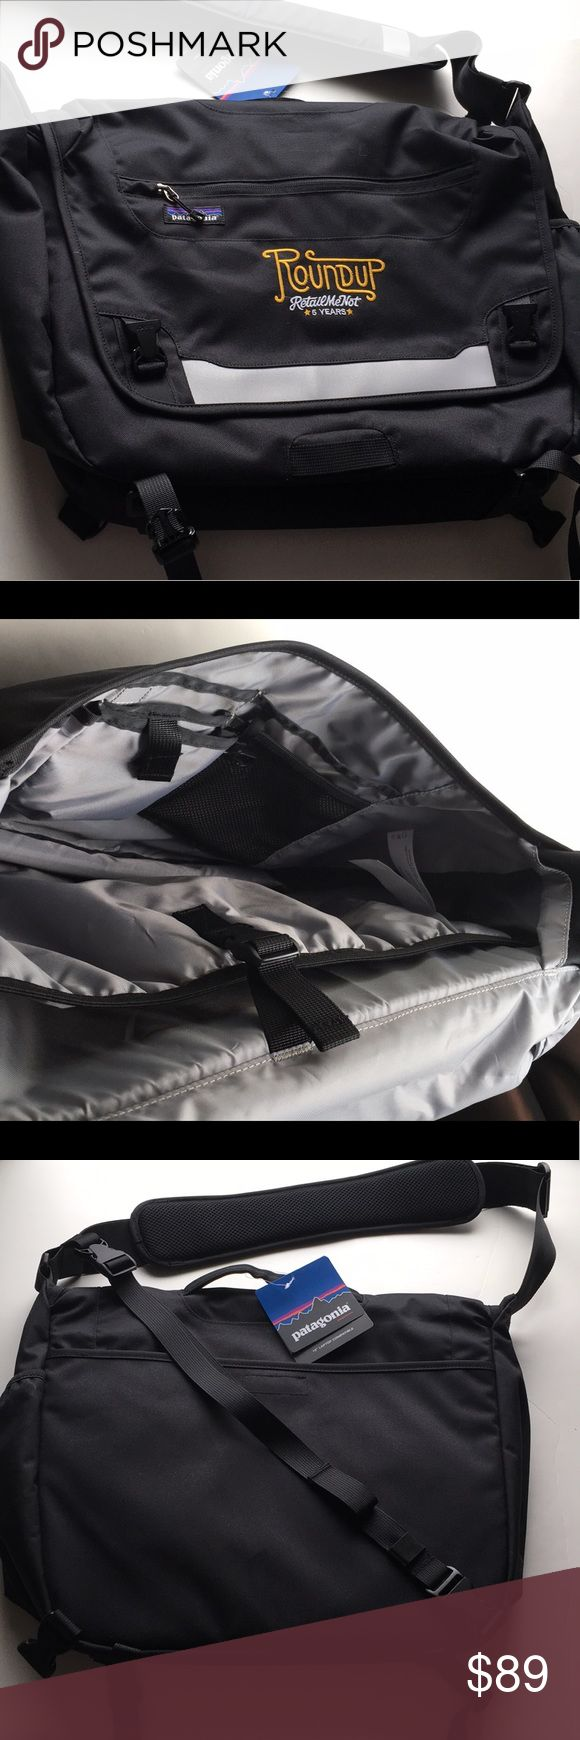 """🎉15"""" NEW Laptop Computer Case Bag Carry-on Sleeve Brand new! 15"""" Laptop Compatible. Embroidery says: """"Roundup Retailmenot 5 years"""". 🎉 Patagonia Bags Laptop Bags"""